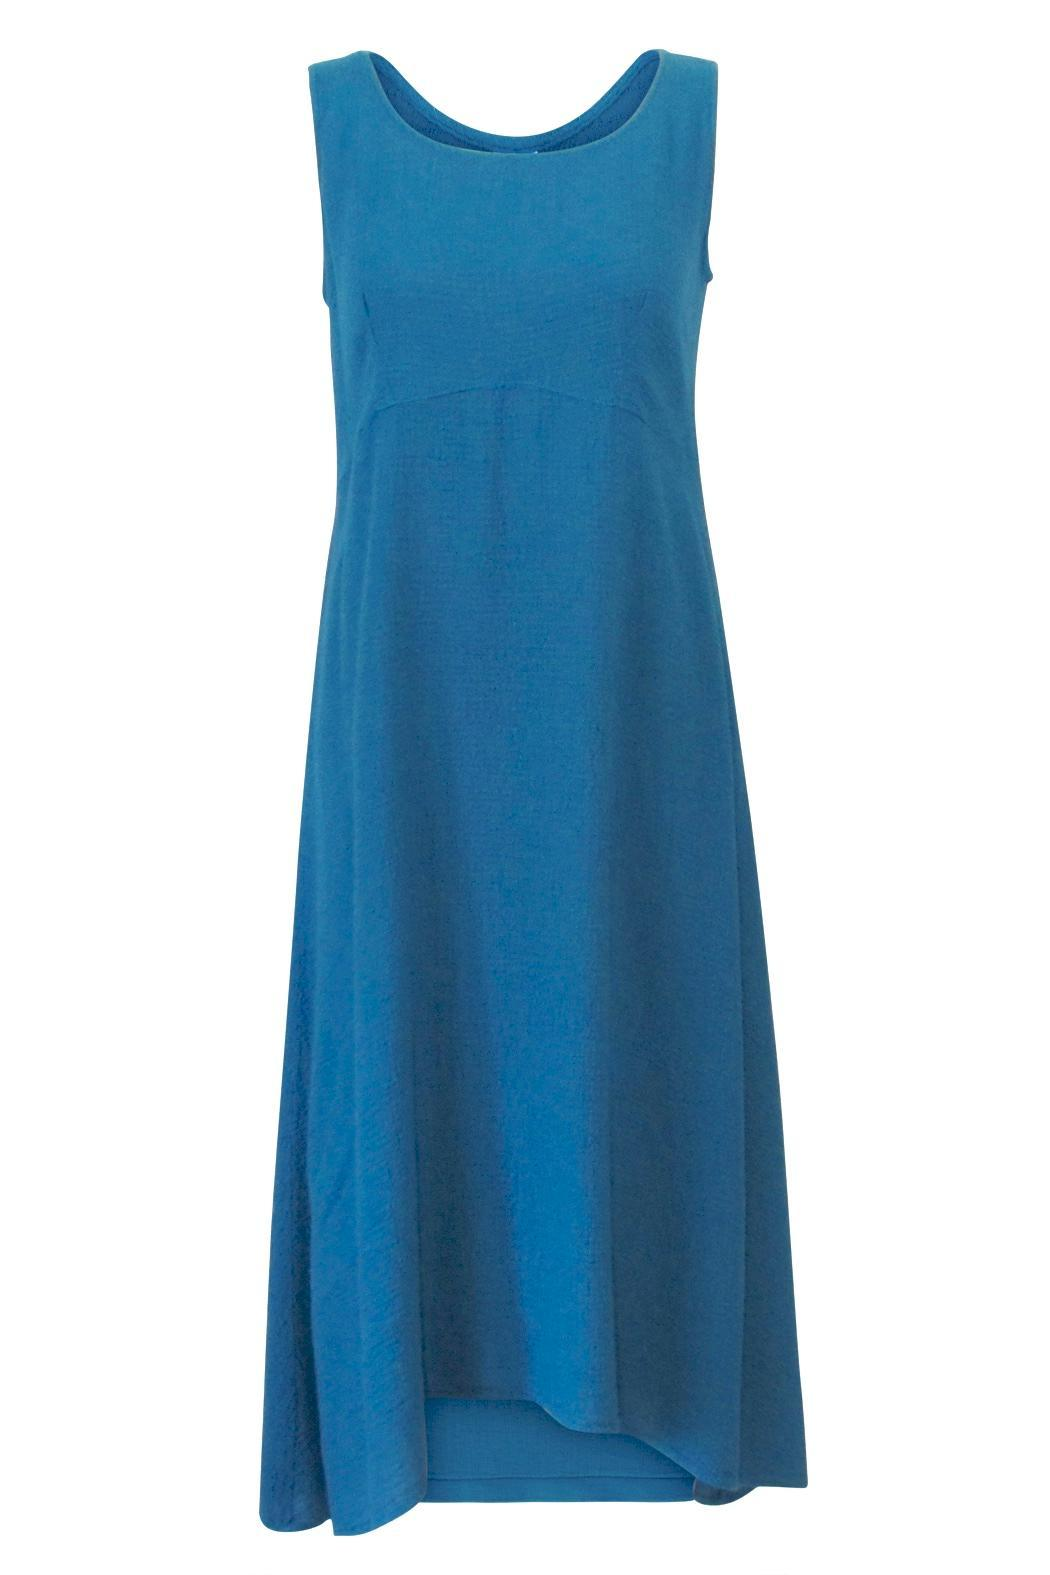 Color Me Cotton Airy Tank Dress - Front Cropped Image